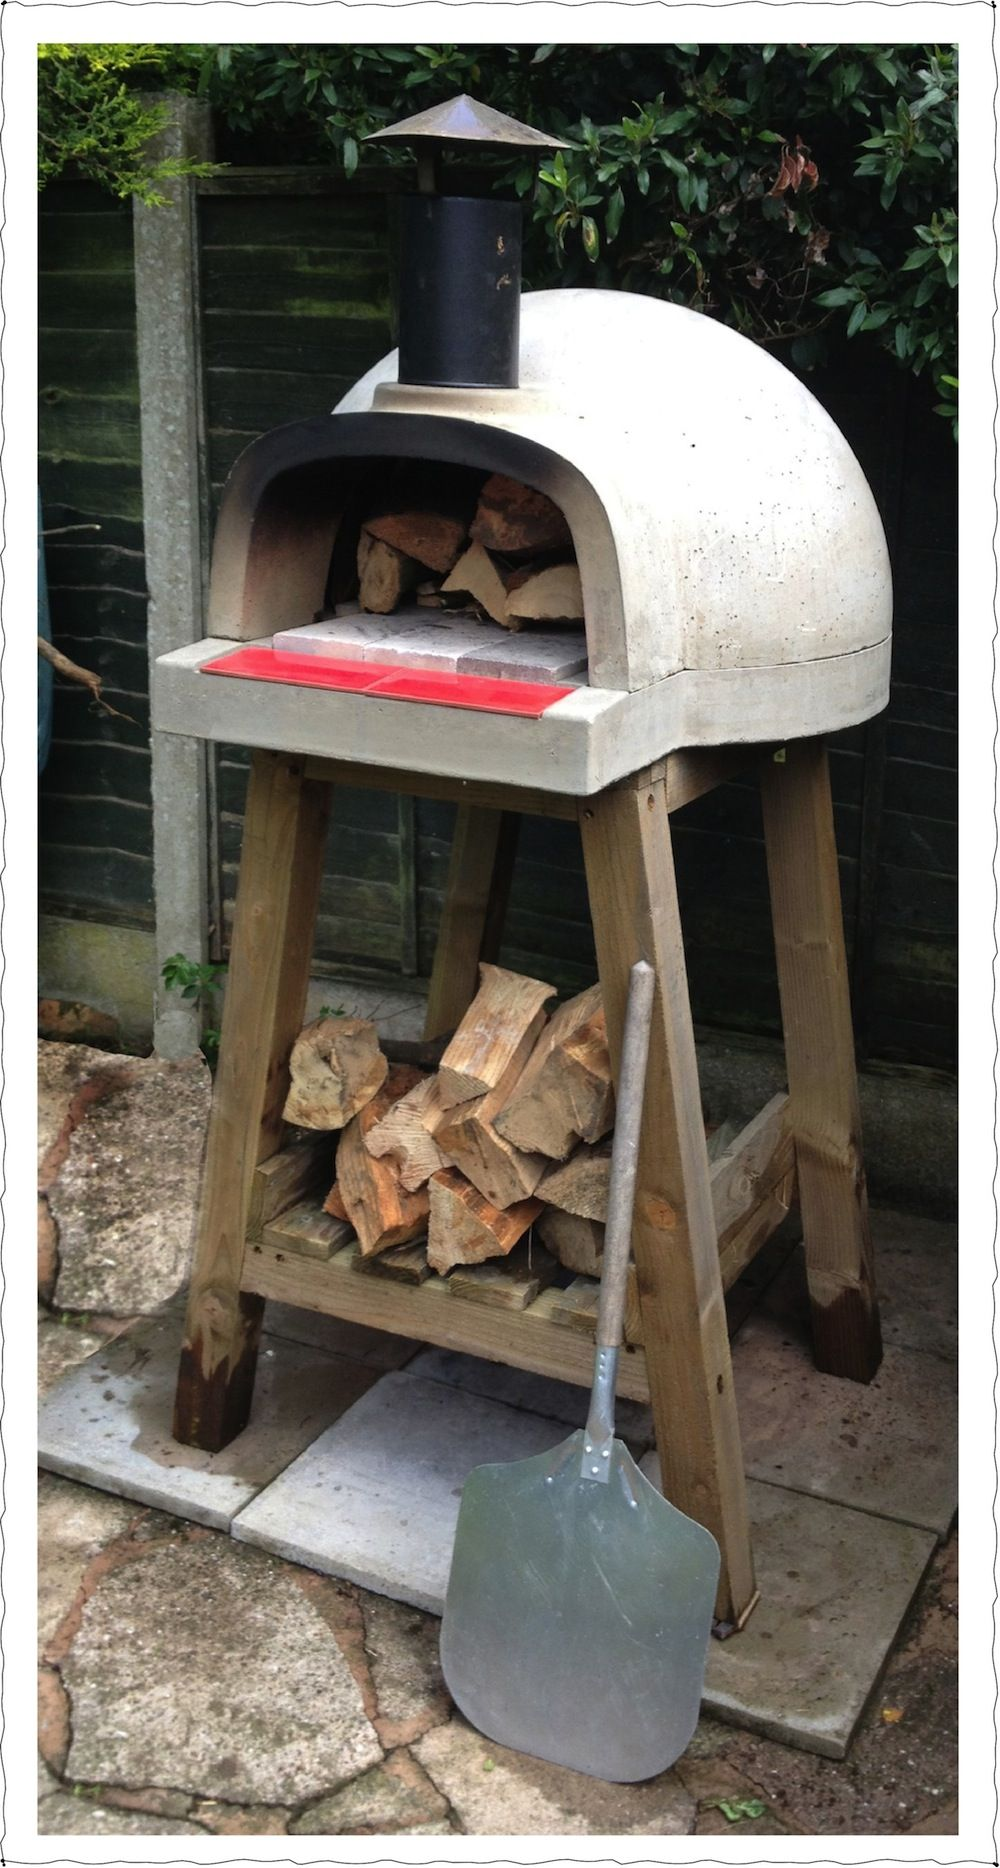 Traditional Wood Fired Ovens, Authentic Italian Style Pizza In Seconds.  Designed For Ease Of Use, An Outdoor Pizza Oven For Inspired Cooking.